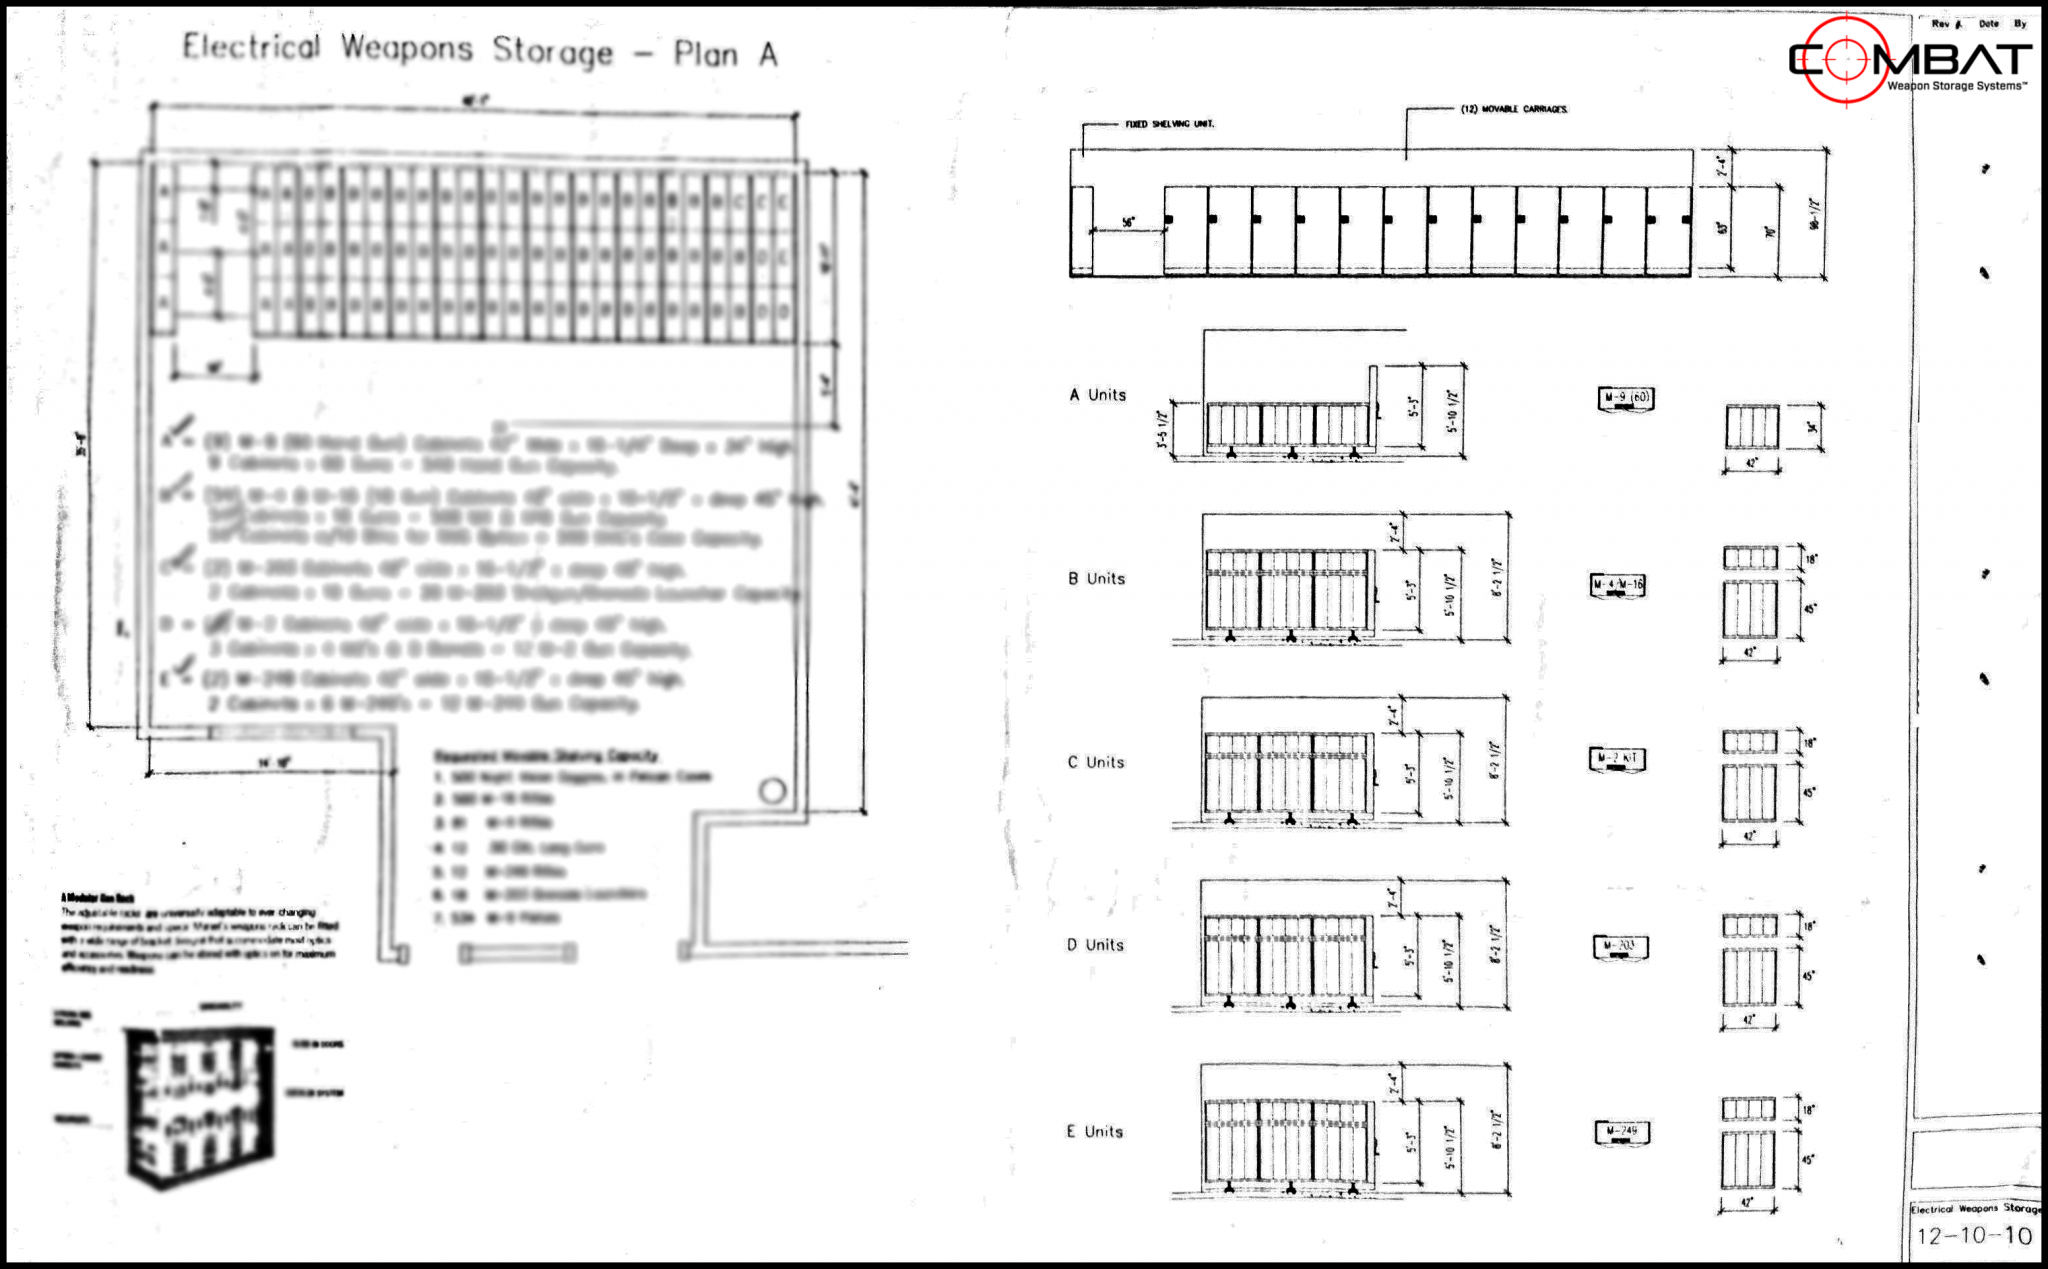 Armory Planning - Weapon Storage